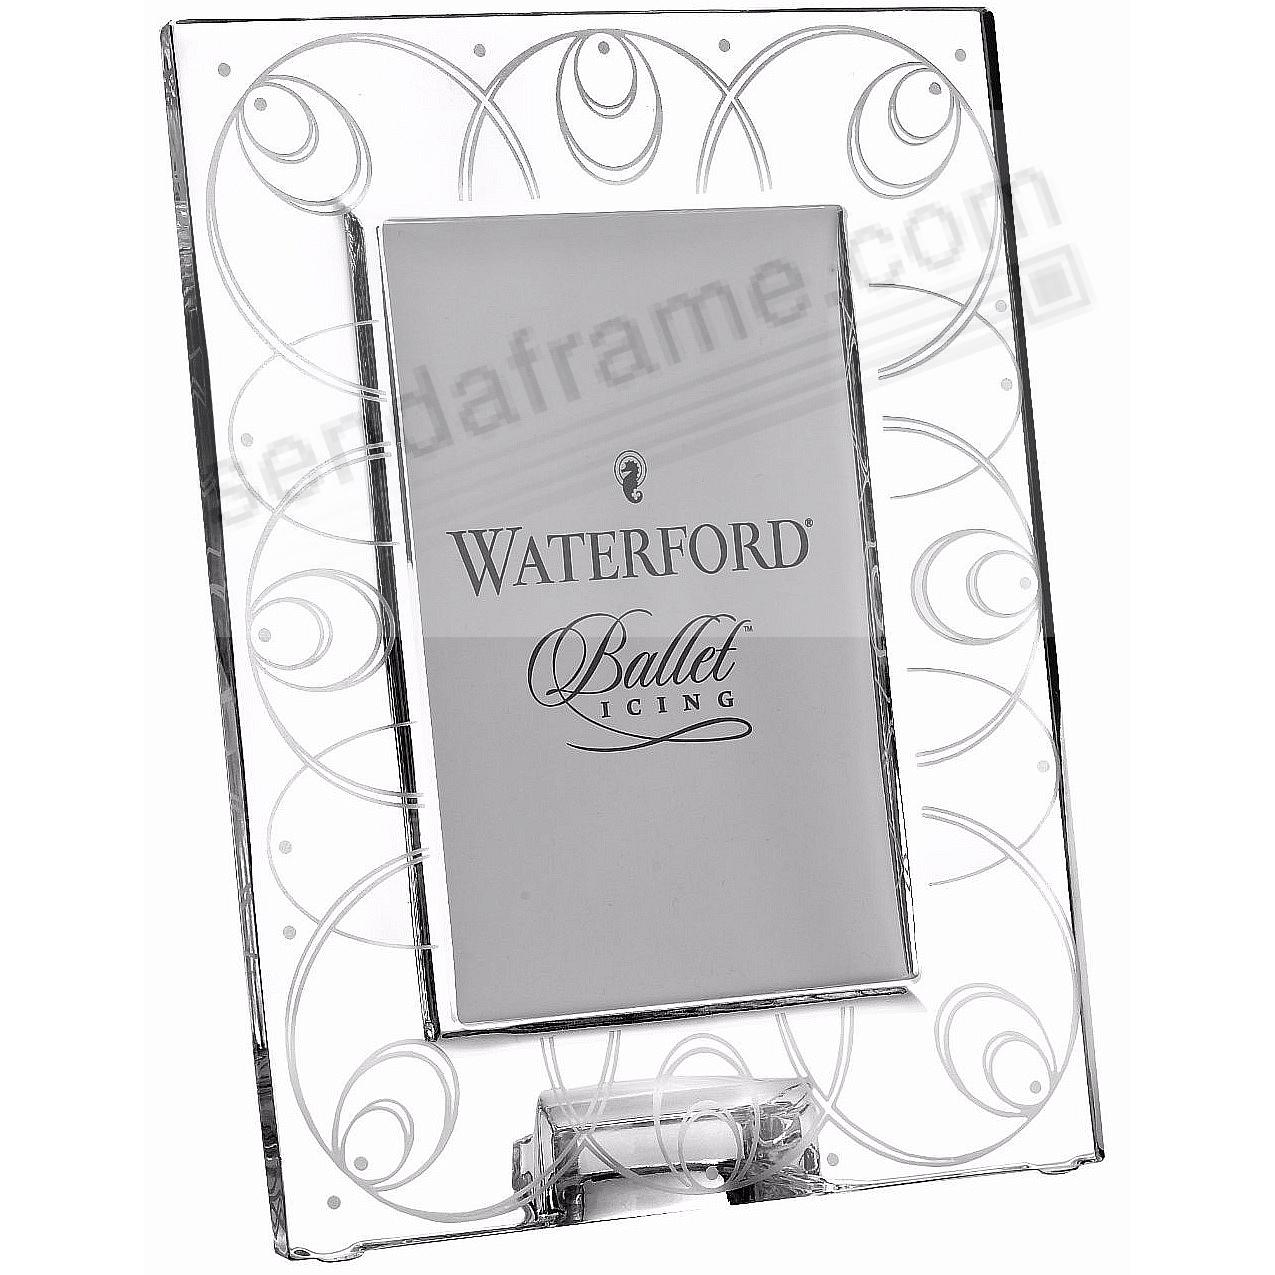 BALLET ICING fine Irish crystal for your 4x6 print by Waterford ...